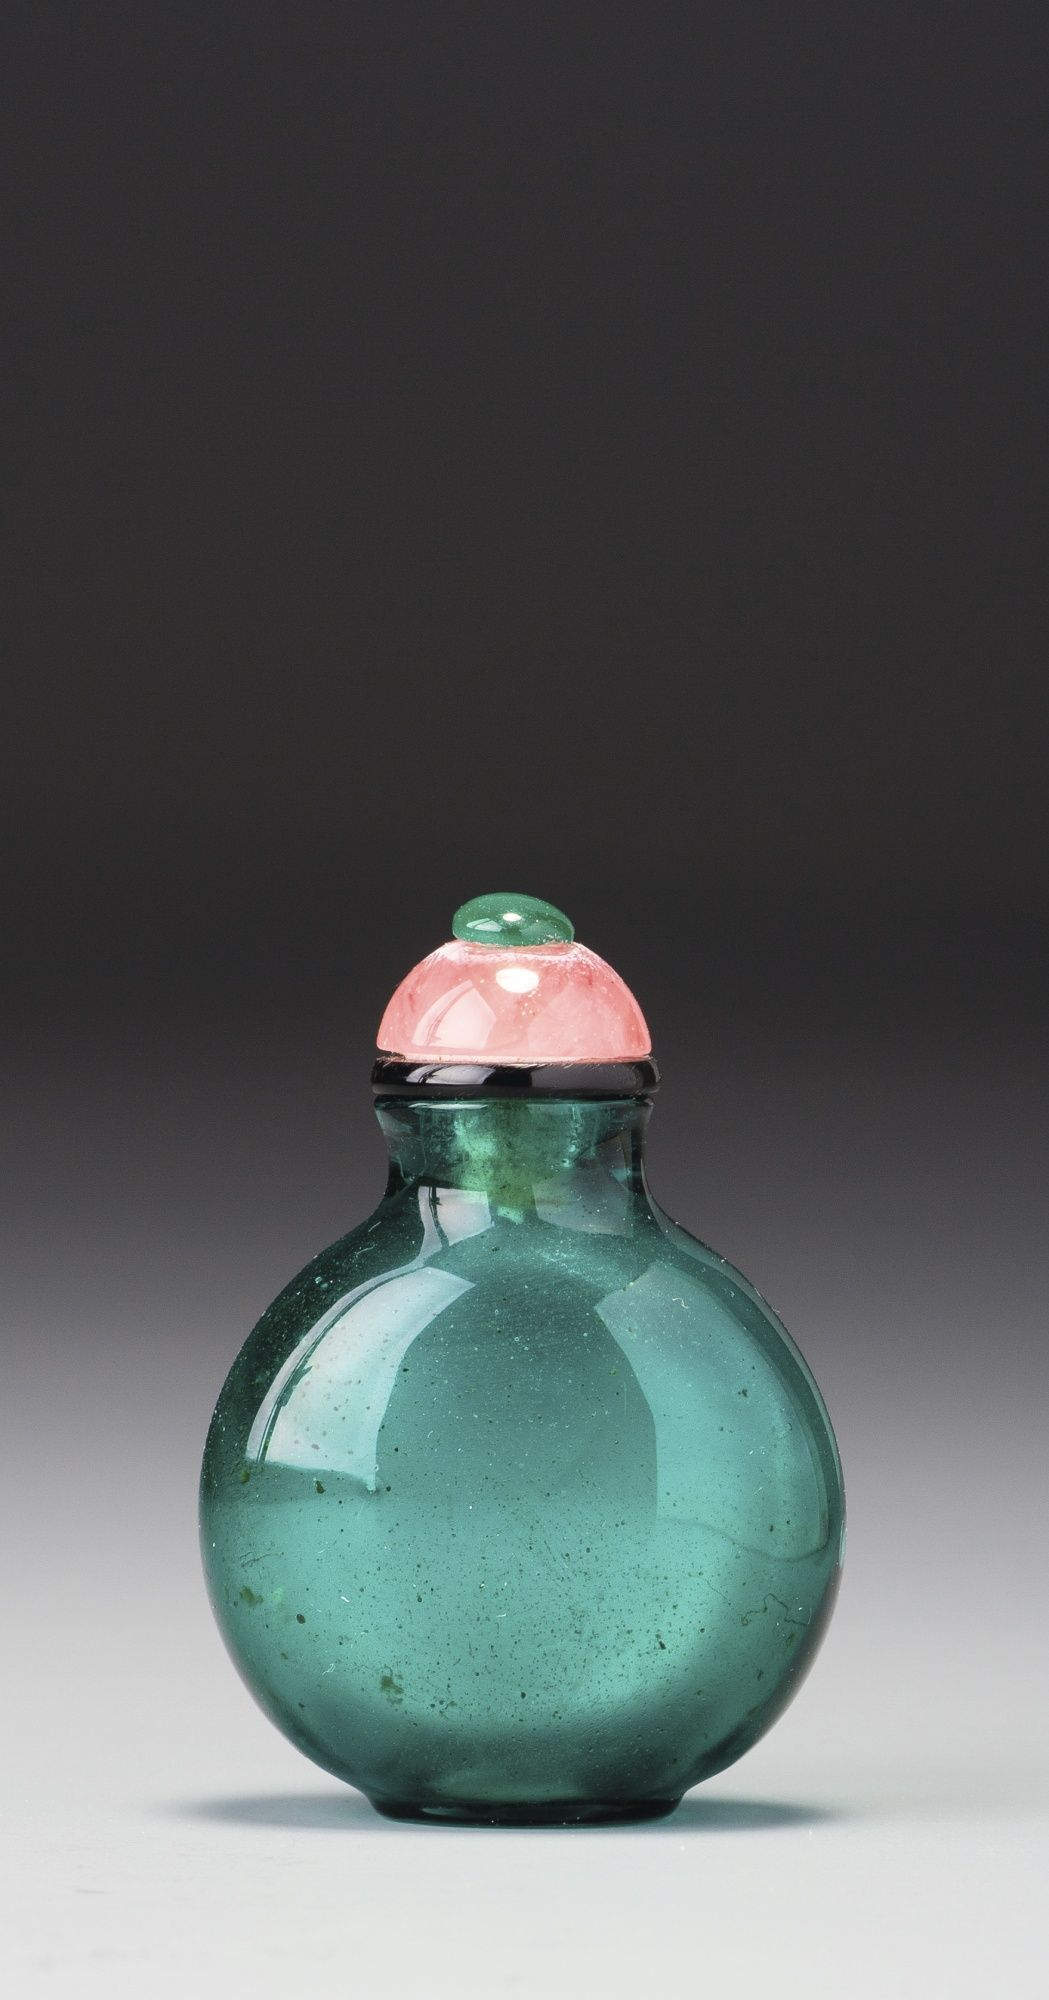 A BLUISH EMERALD-GREEN GLASS SNUFF BOTTLE<br>QING DYNASTY, 18TH / 19TH CENTURY   lot   Sotheby's